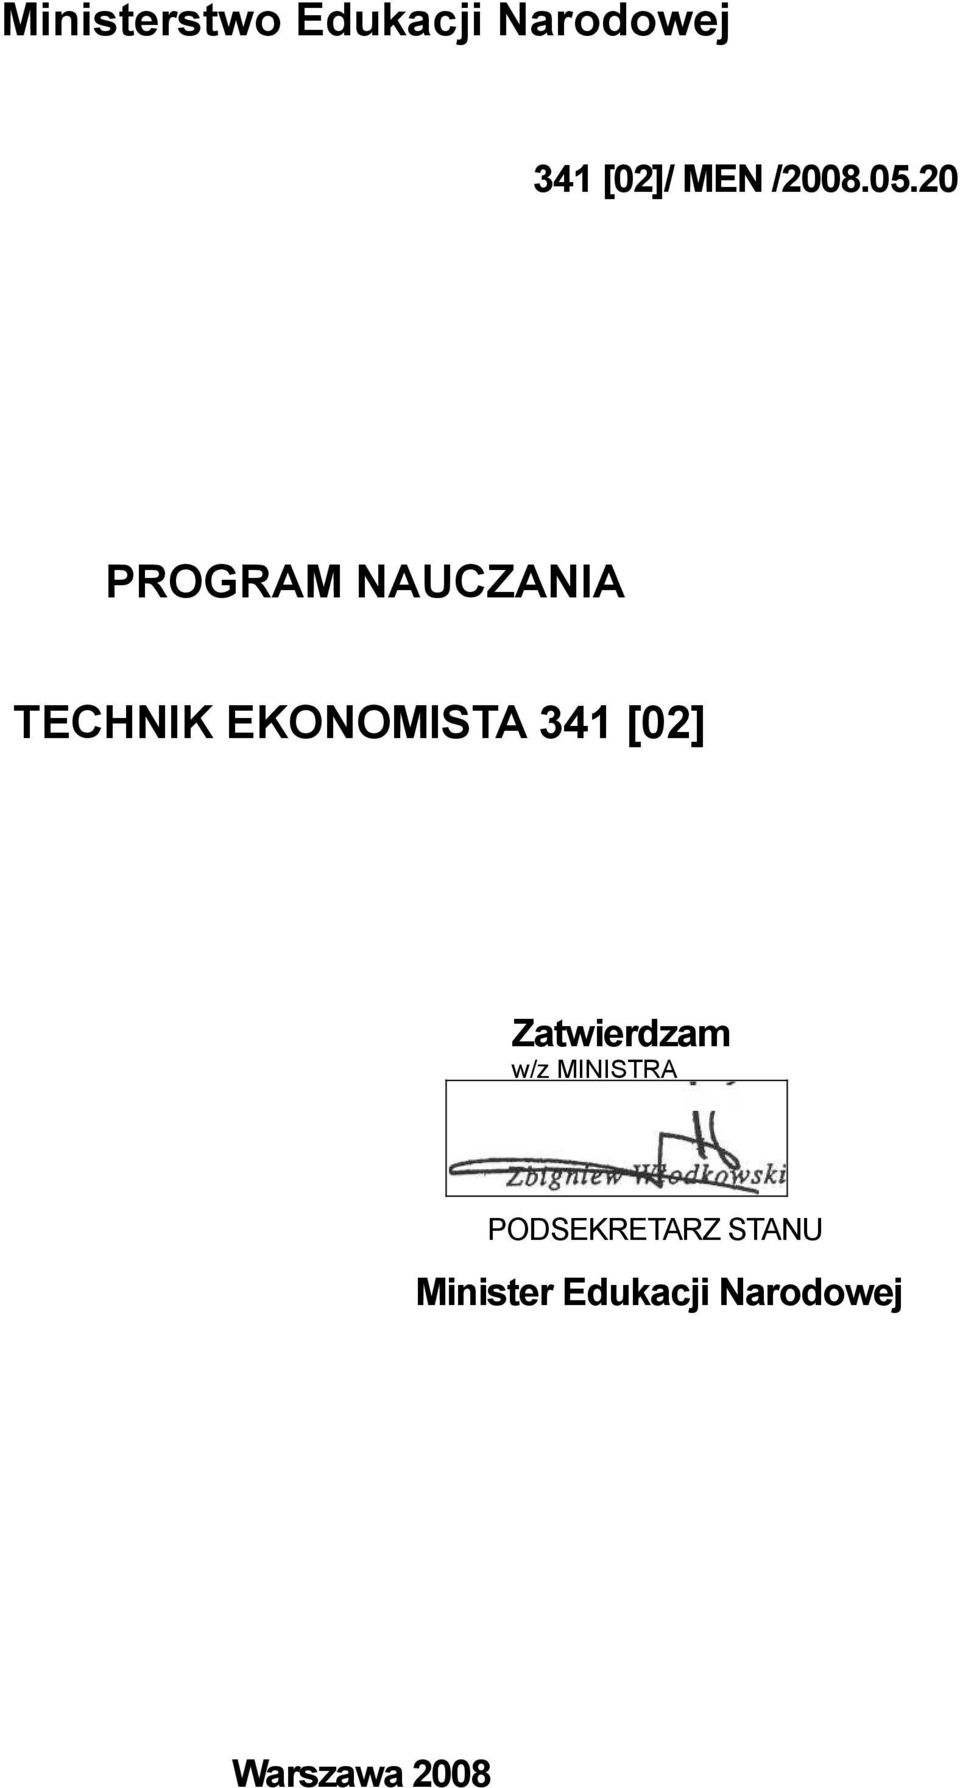 20 PROGRAM NAUCZANIA TECHNIK EKONOMISTA 341